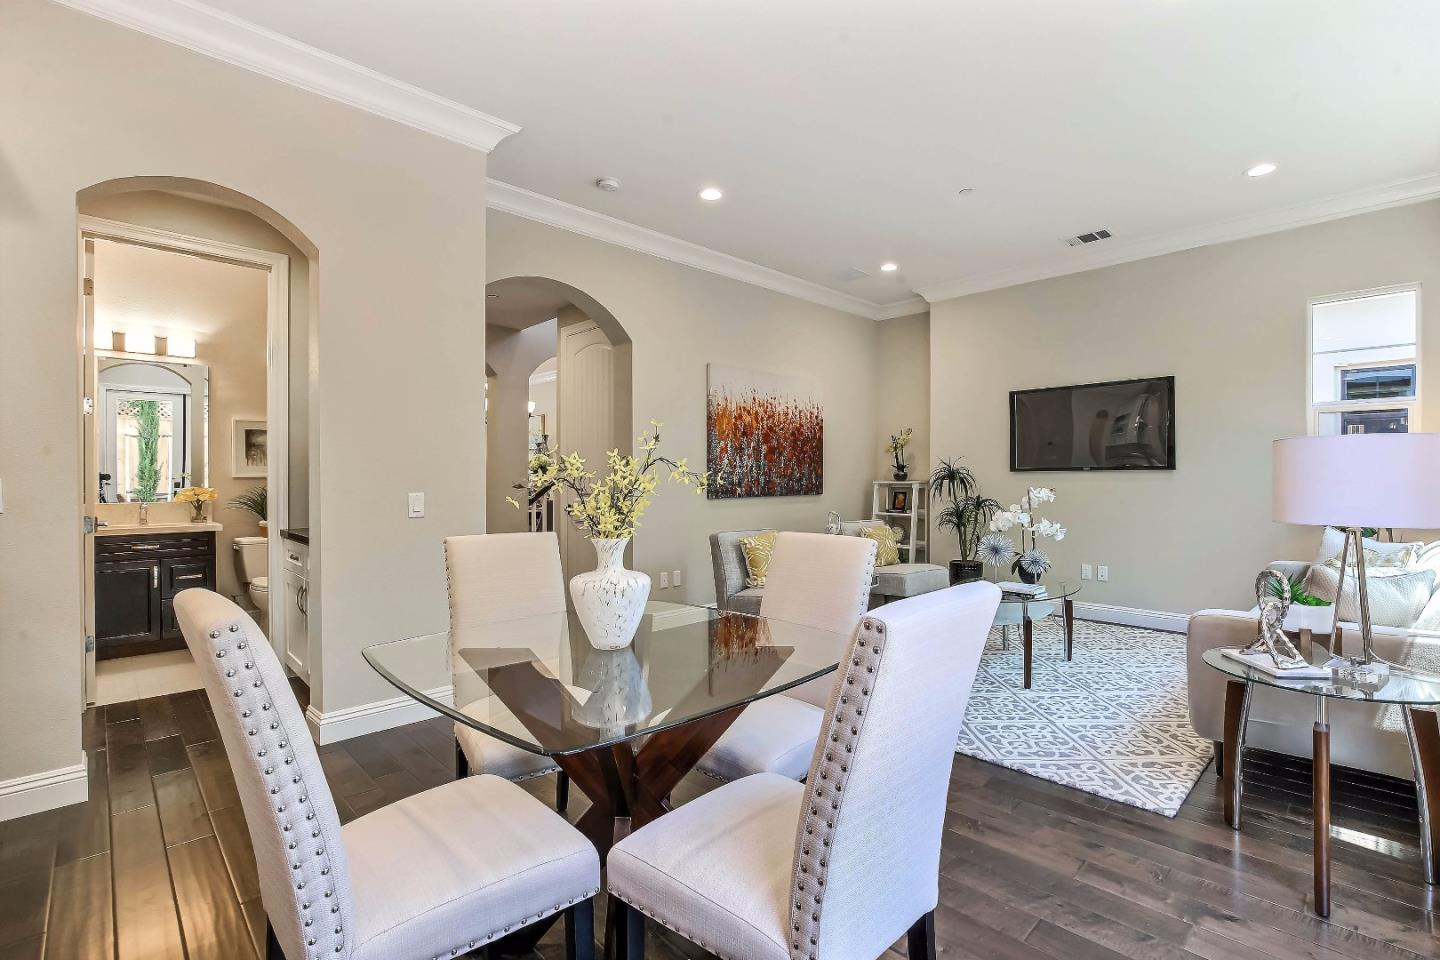 Additional photo for property listing at 966 Wren Court  Santa Clara, California 95051 Estados Unidos